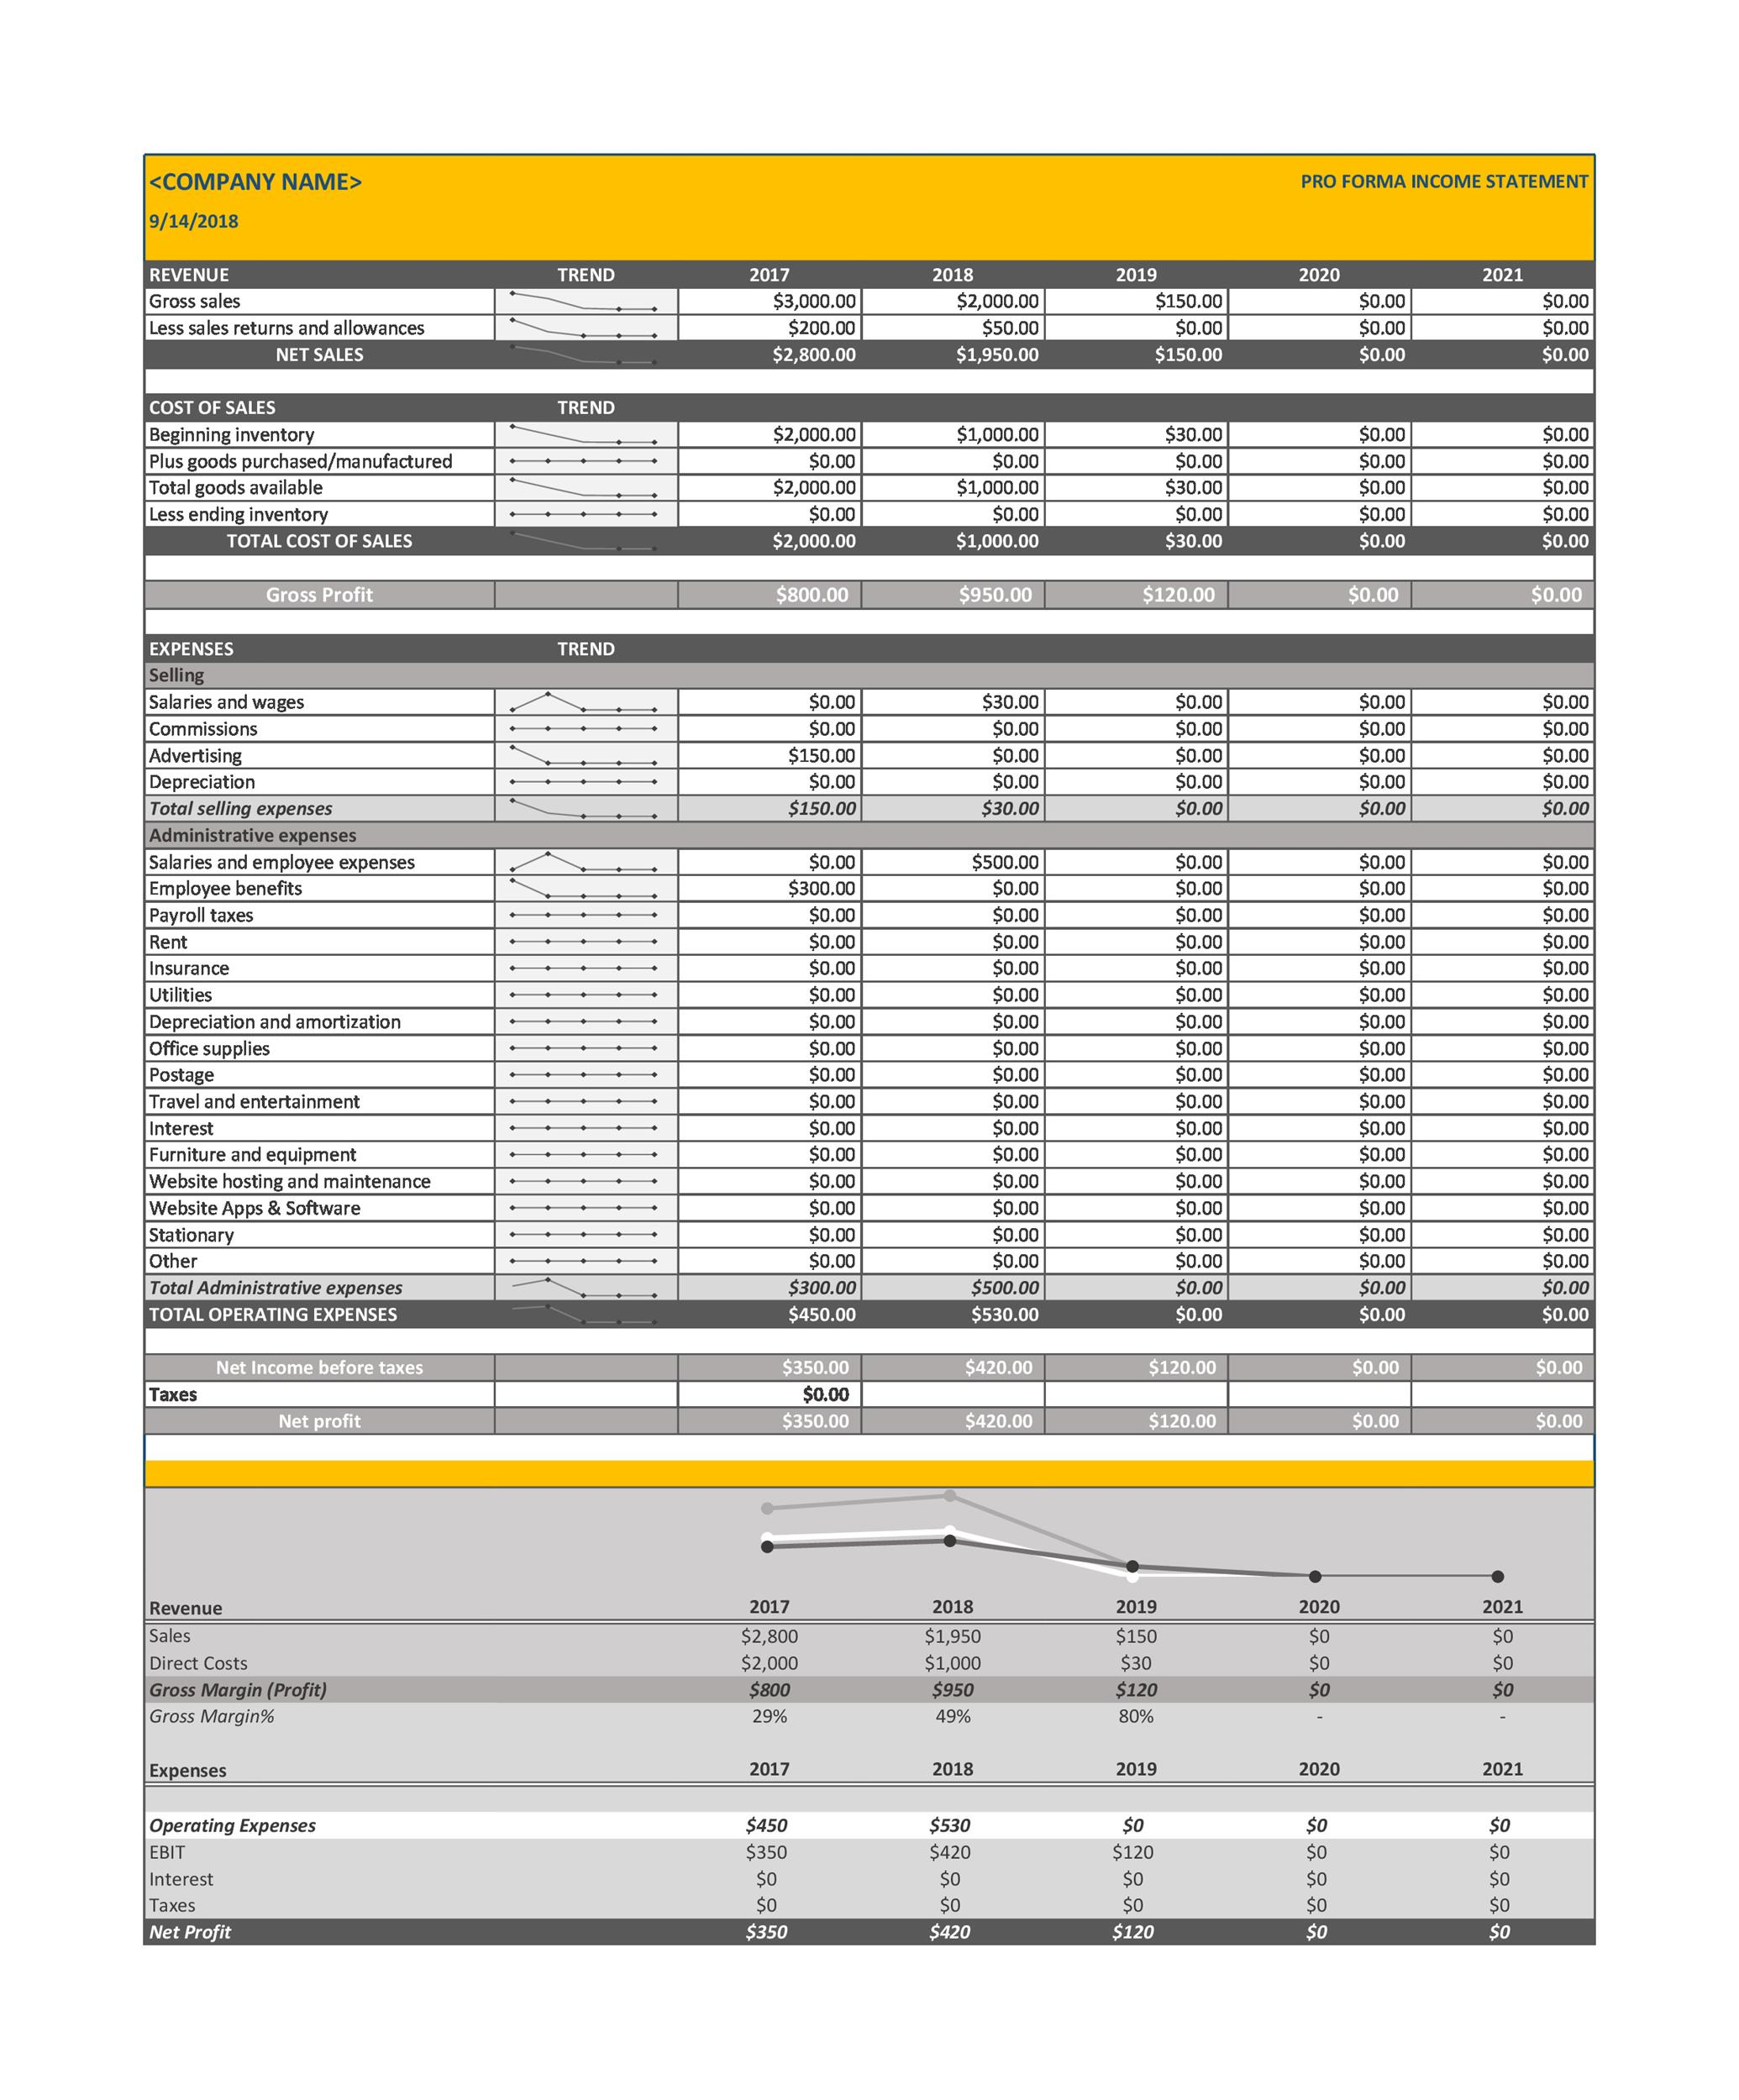 Free Pro forma Income Statement